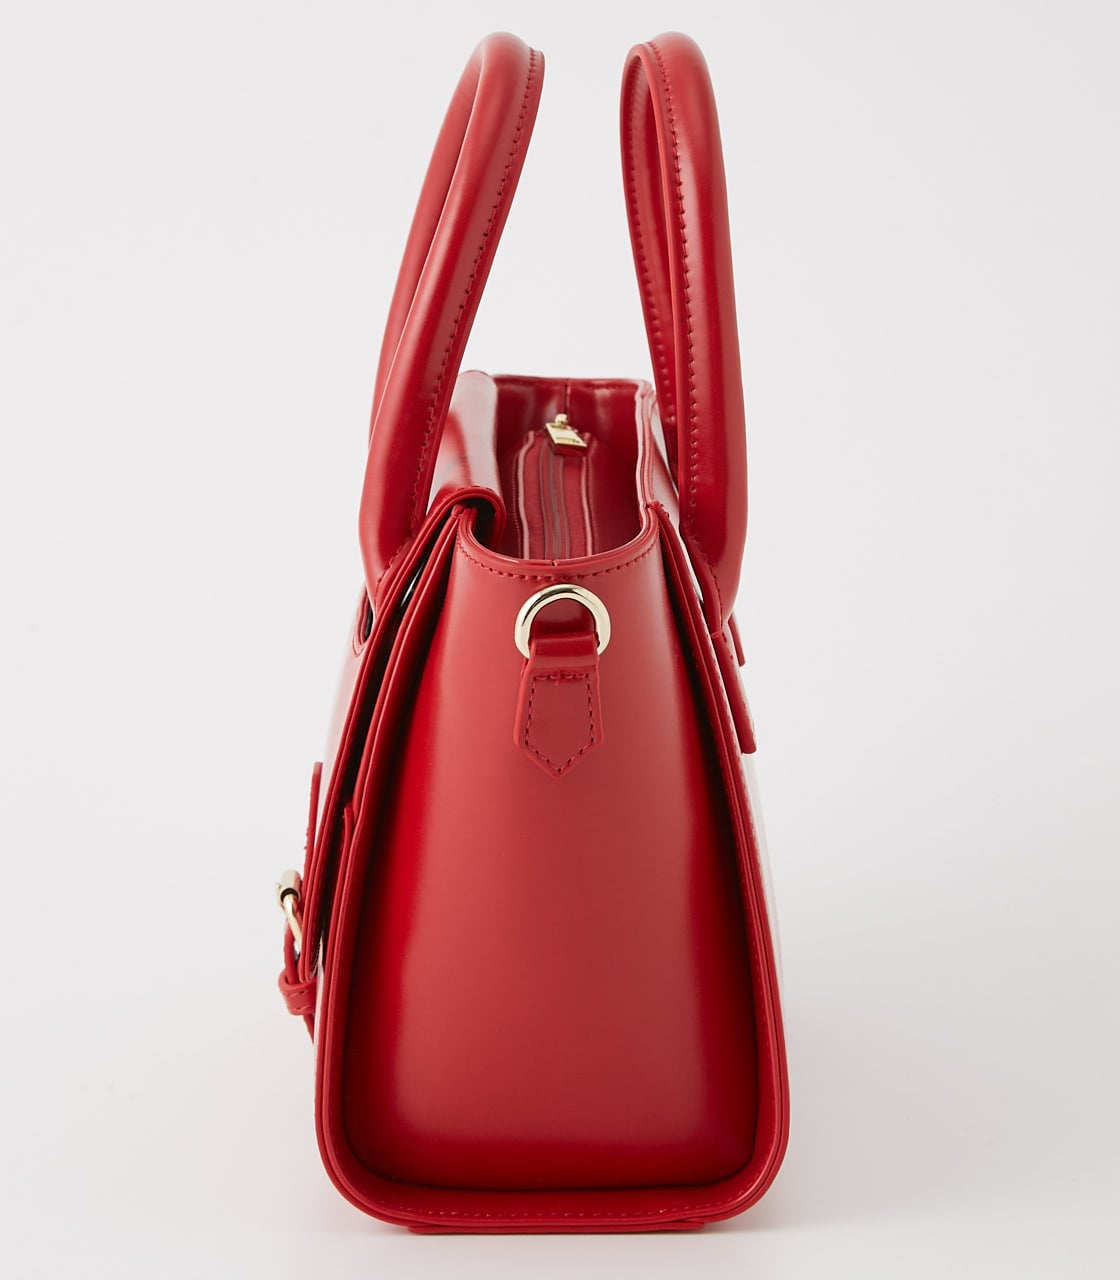 【AZUL BY MOUSSY】BELT DESIGN HAND BAG 詳細画像 RED 2